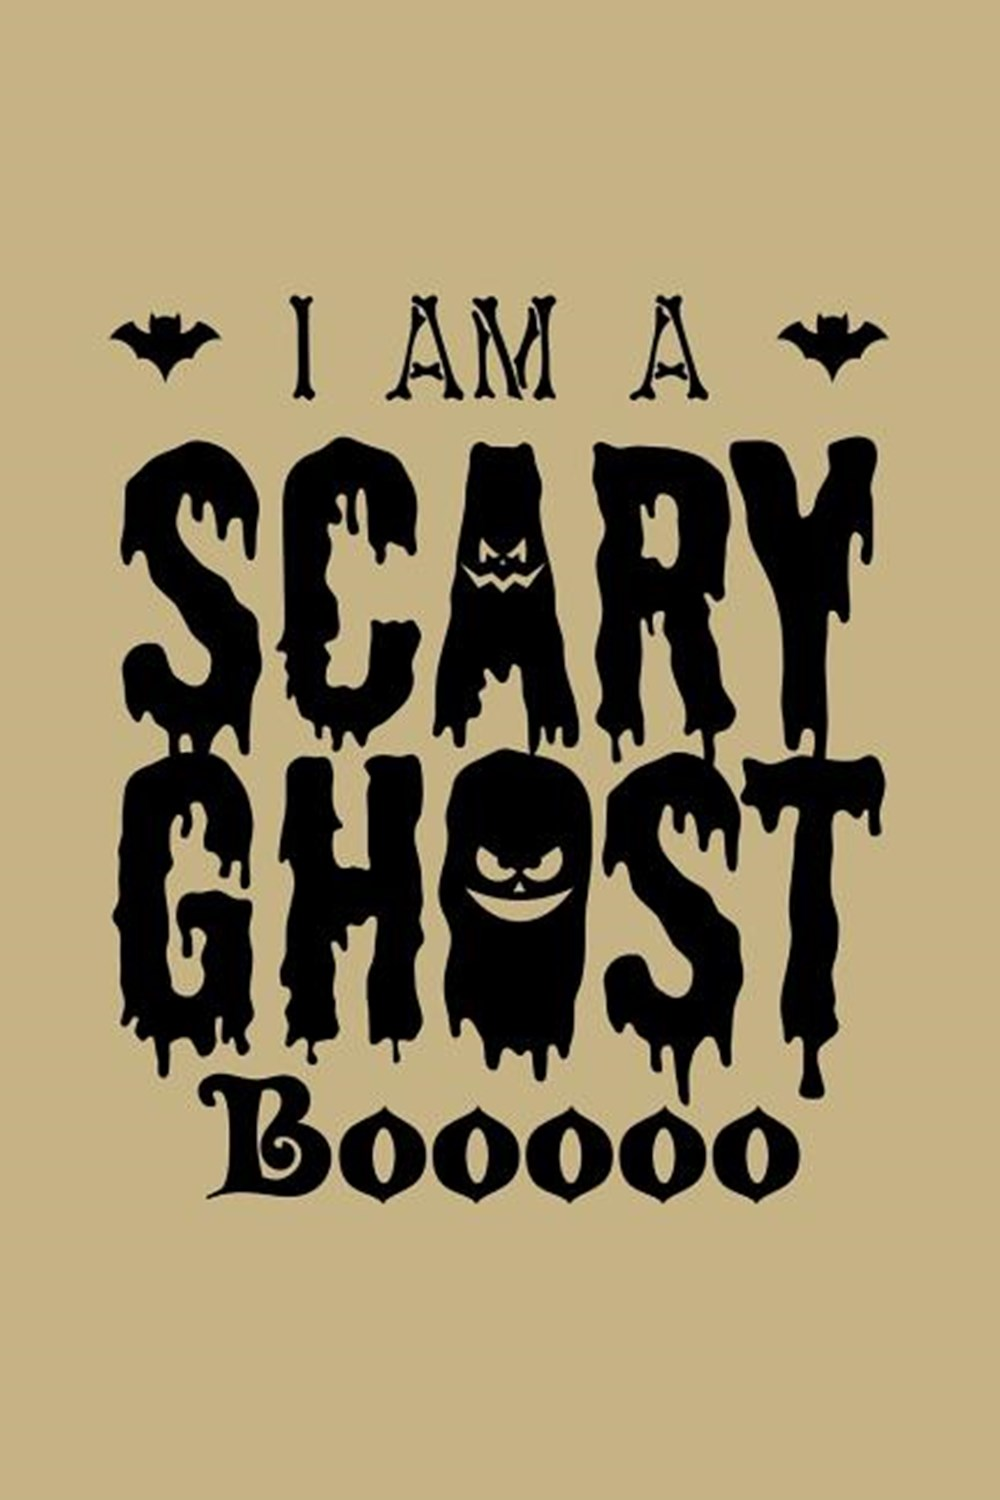 I Am A Scary Ghost Booooo Blank Paper Sketch Book - Artist Sketch Pad Journal for Sketching, Doodlin